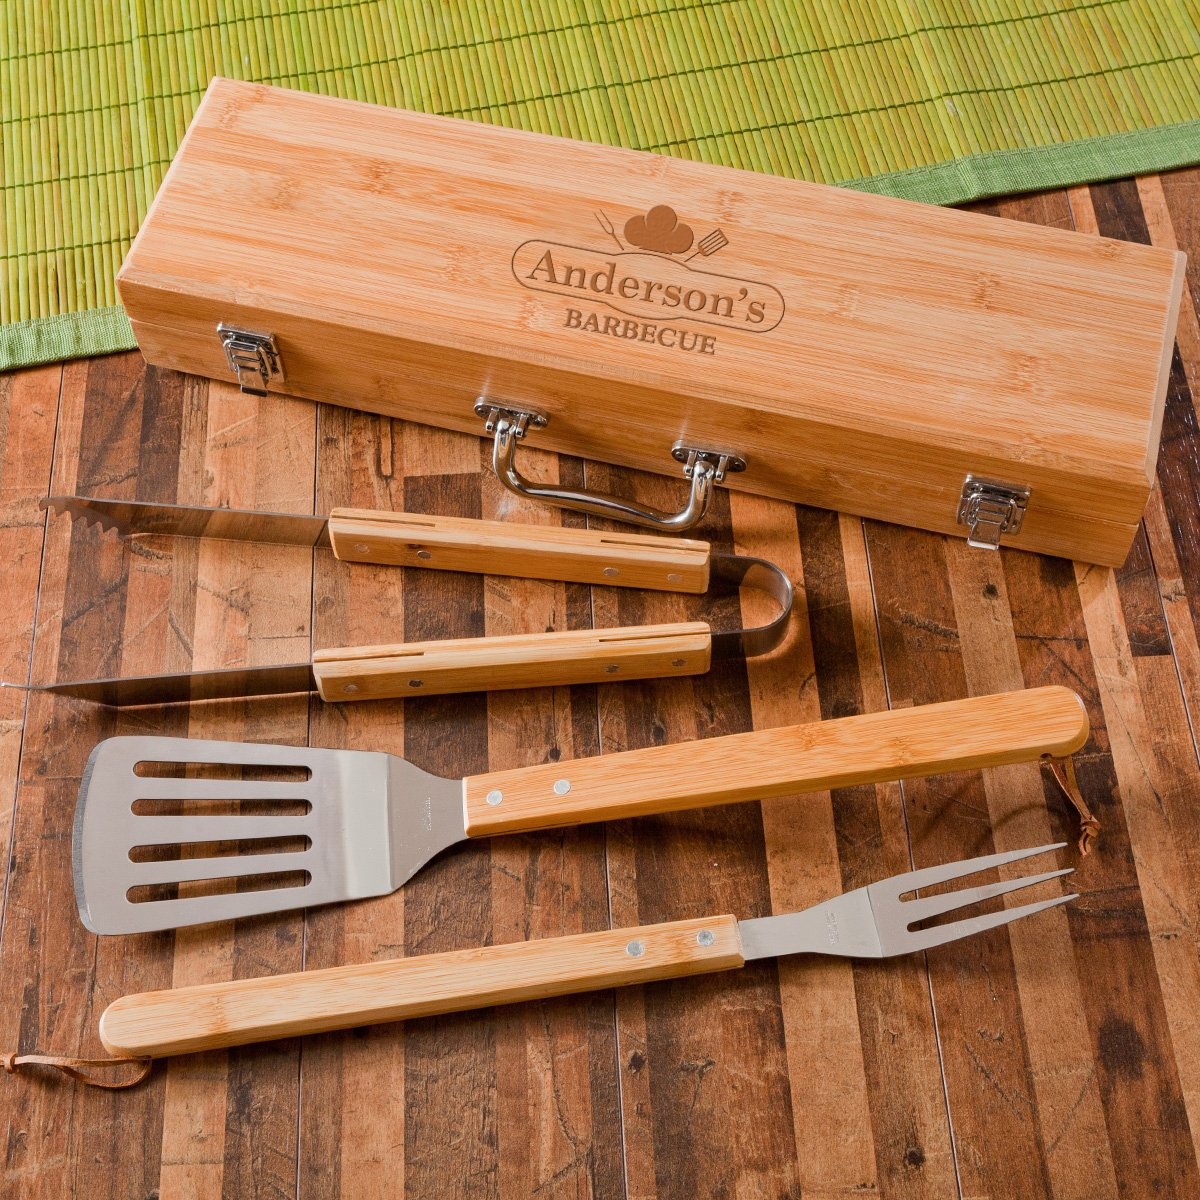 Personalized Grilling BBQ Set with Bamboo Case – Personalized Grill Set